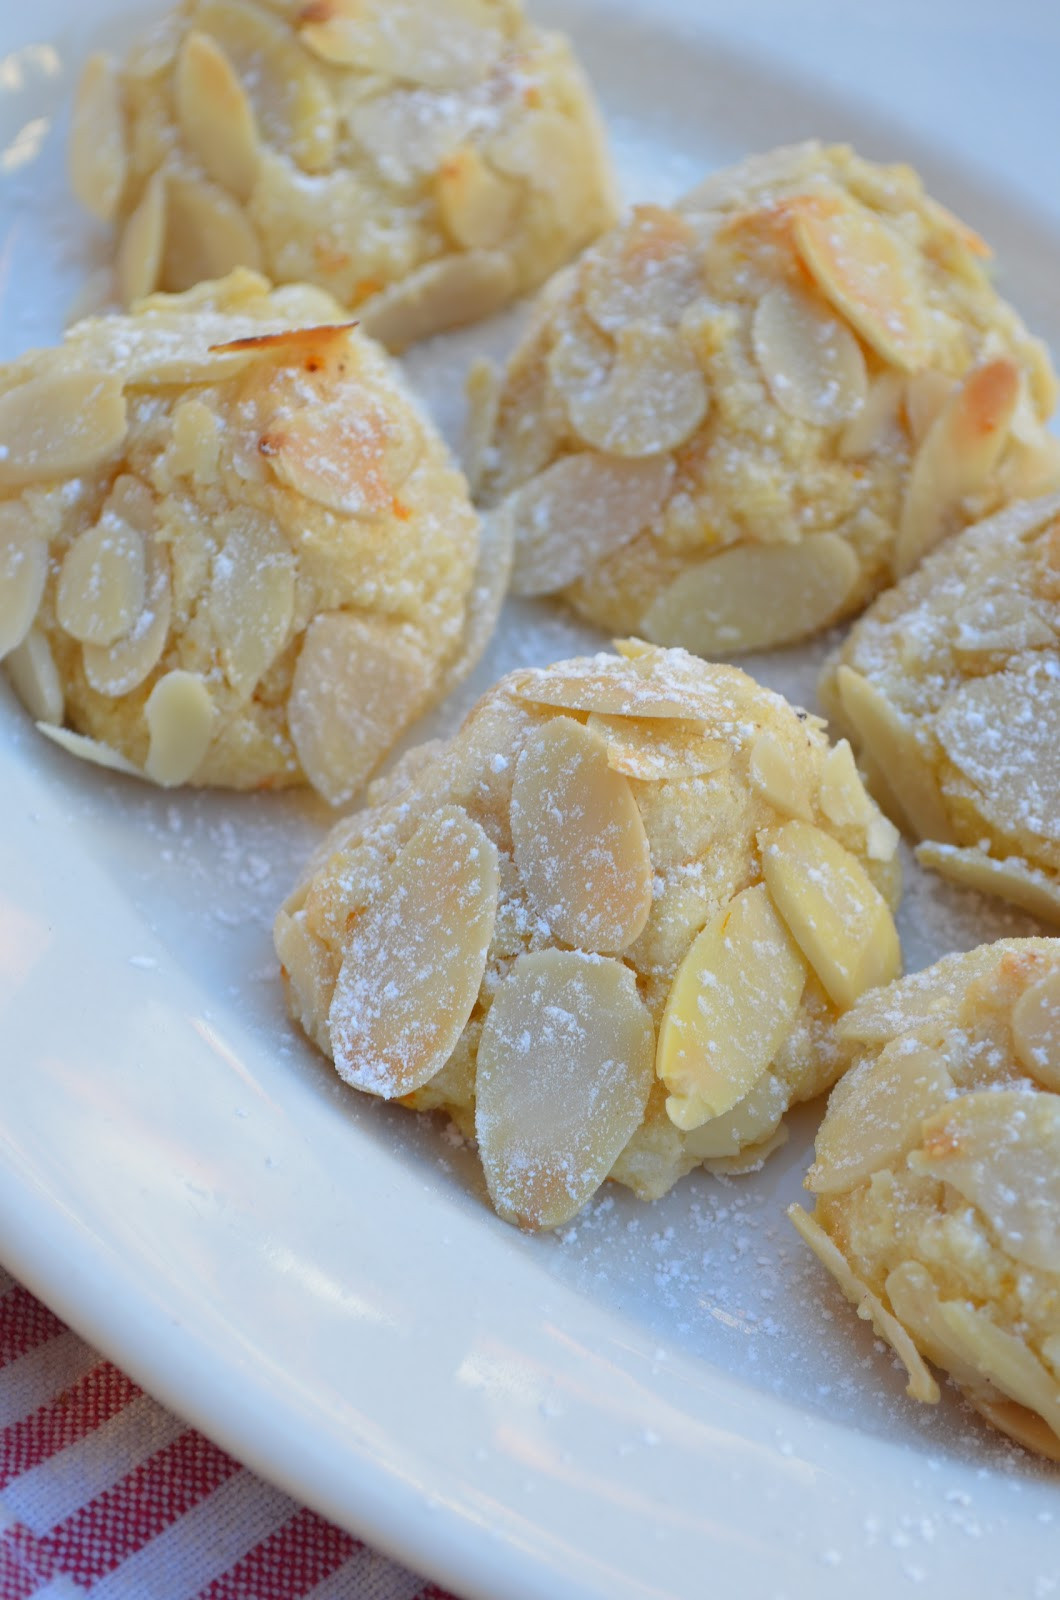 Almond Cookies Recipe  amour fou d almond cookies